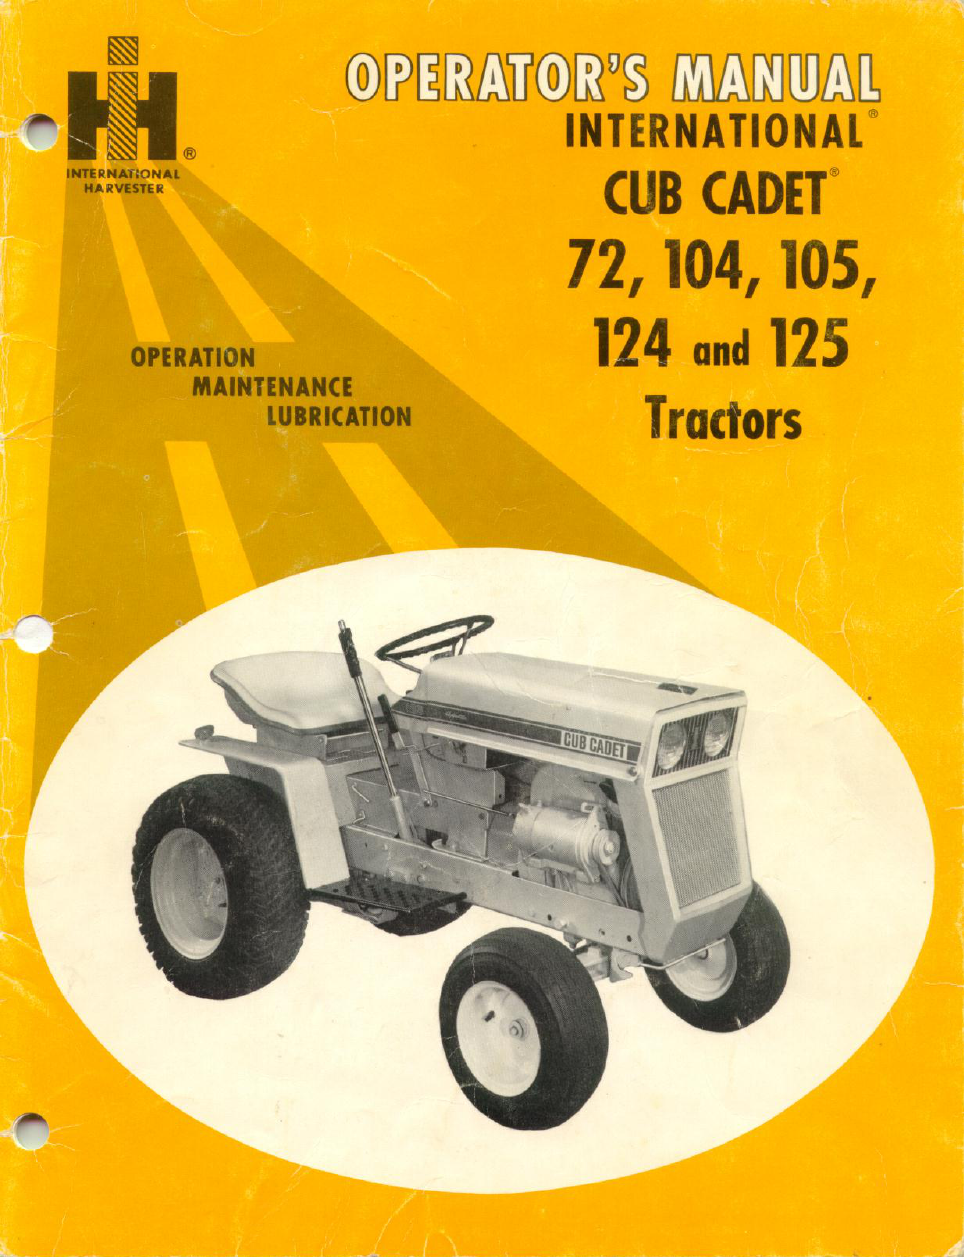 Cub Cadet Users Manual 1863 Tractor Wiring Diagram 124 User S Free Pdf Download 40 Pages Rh Manualagent Com Owners Xt1 Lt1042